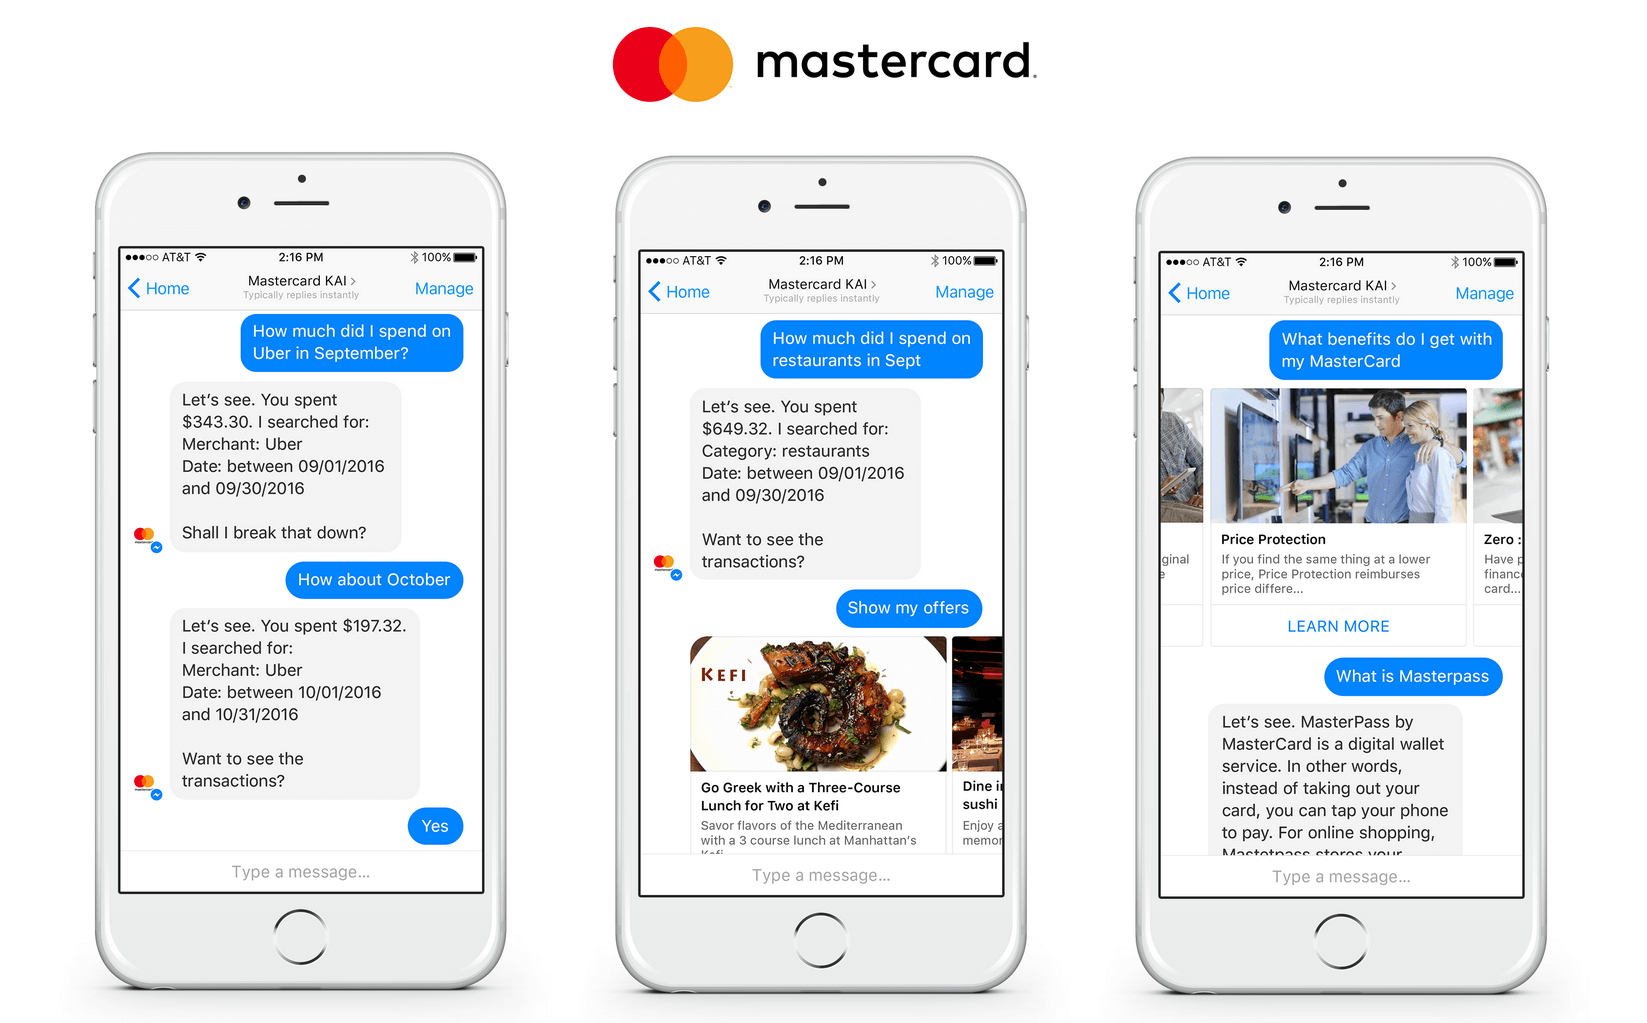 MasterCard Launches Artificial Intelligence Bot for Consumer Banking